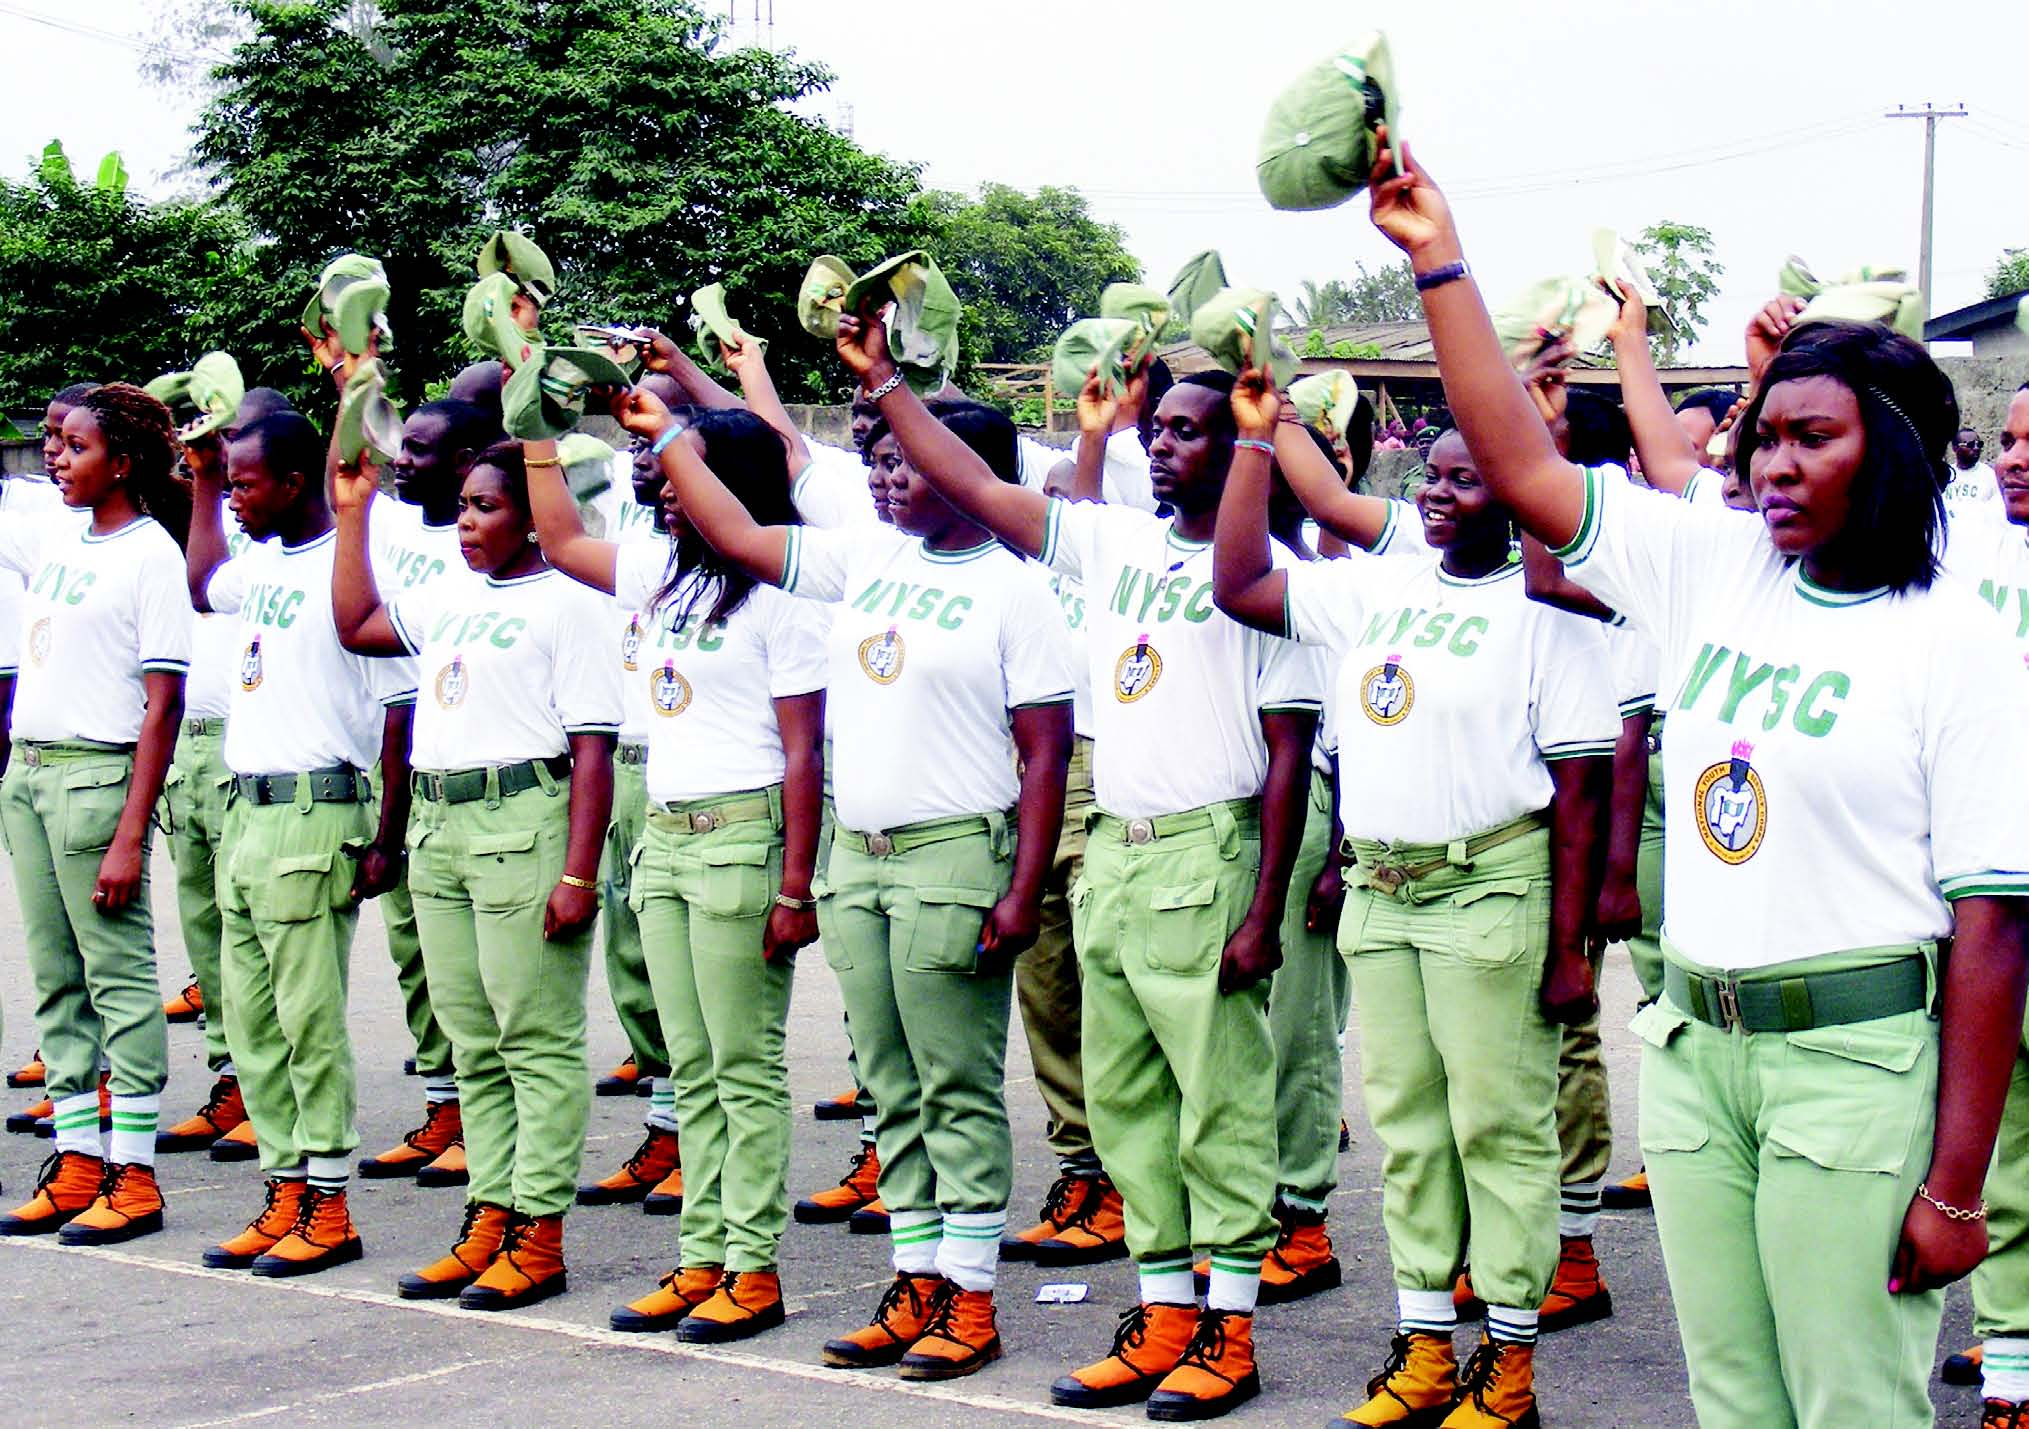 http://venturesafrica.com/wp-content/uploads/2016/01/Cross-section-of-2012-Batch-%E2%80%98A%E2%80%99-NYSC-corps-members-during-the-passing-out-parade-in-Lagos-yesterday.-1.jpg